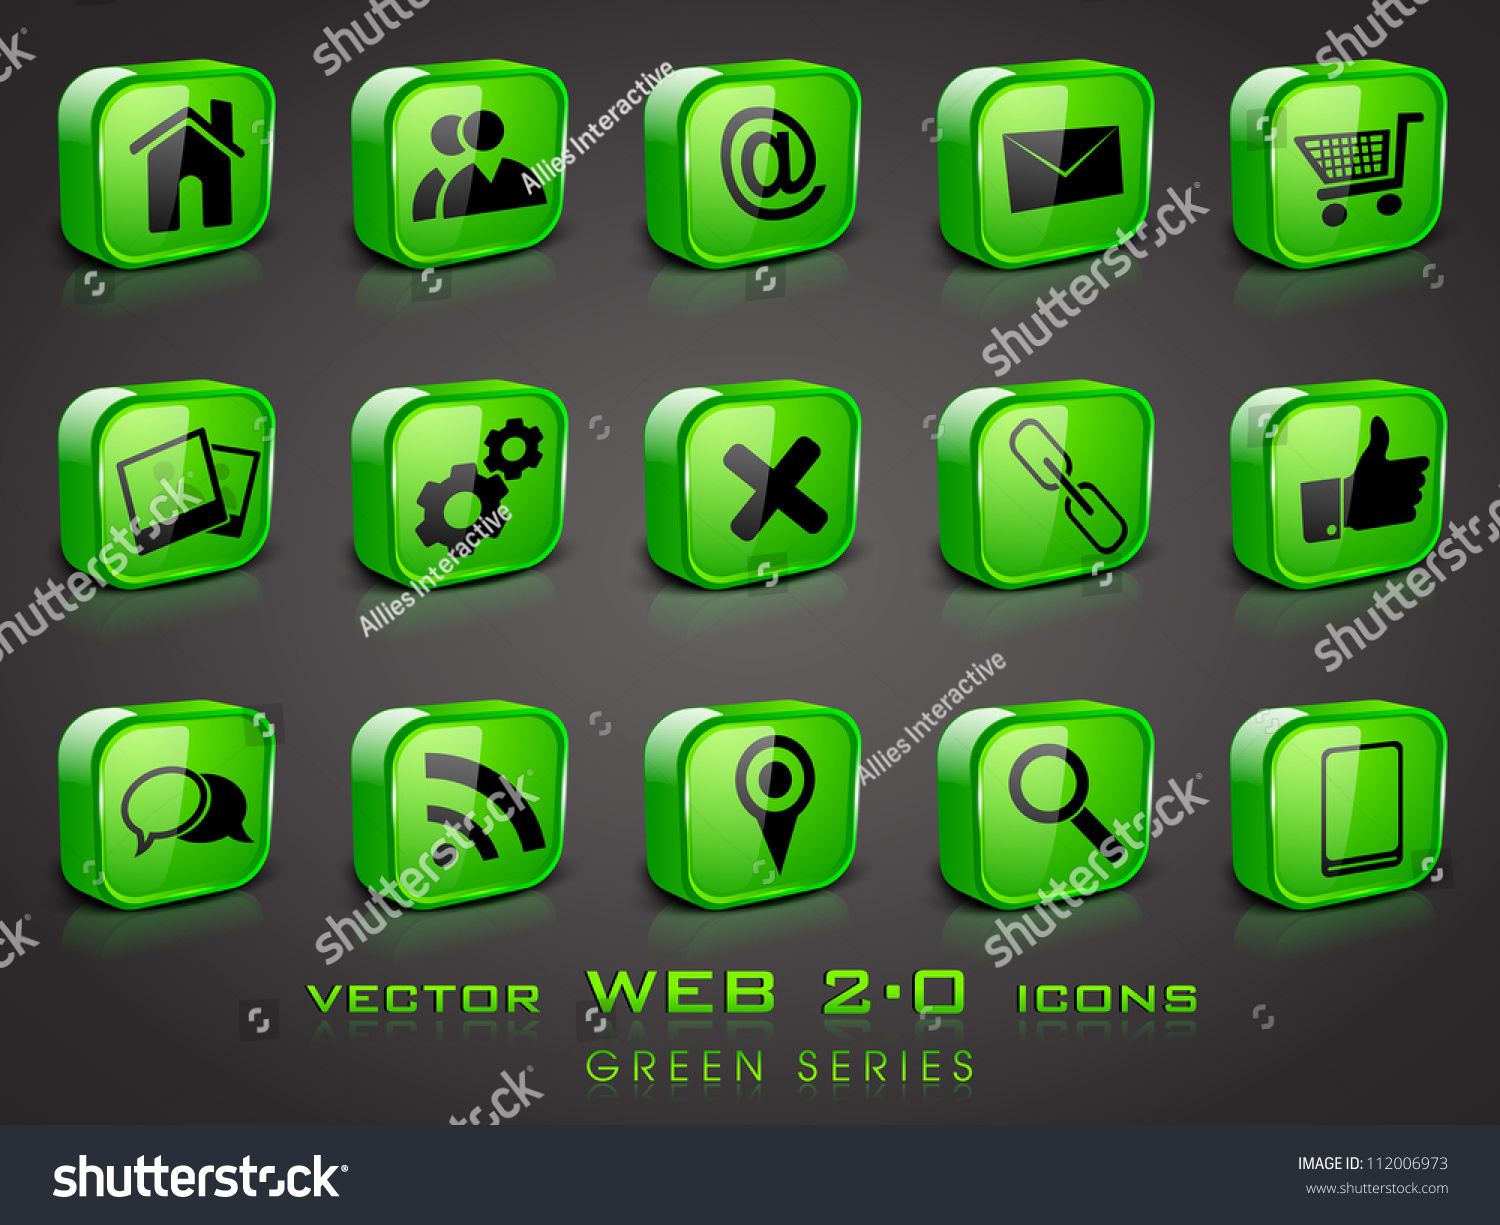 3d Web 2 0 Mail Icons Set Can Be Used For Websites Web